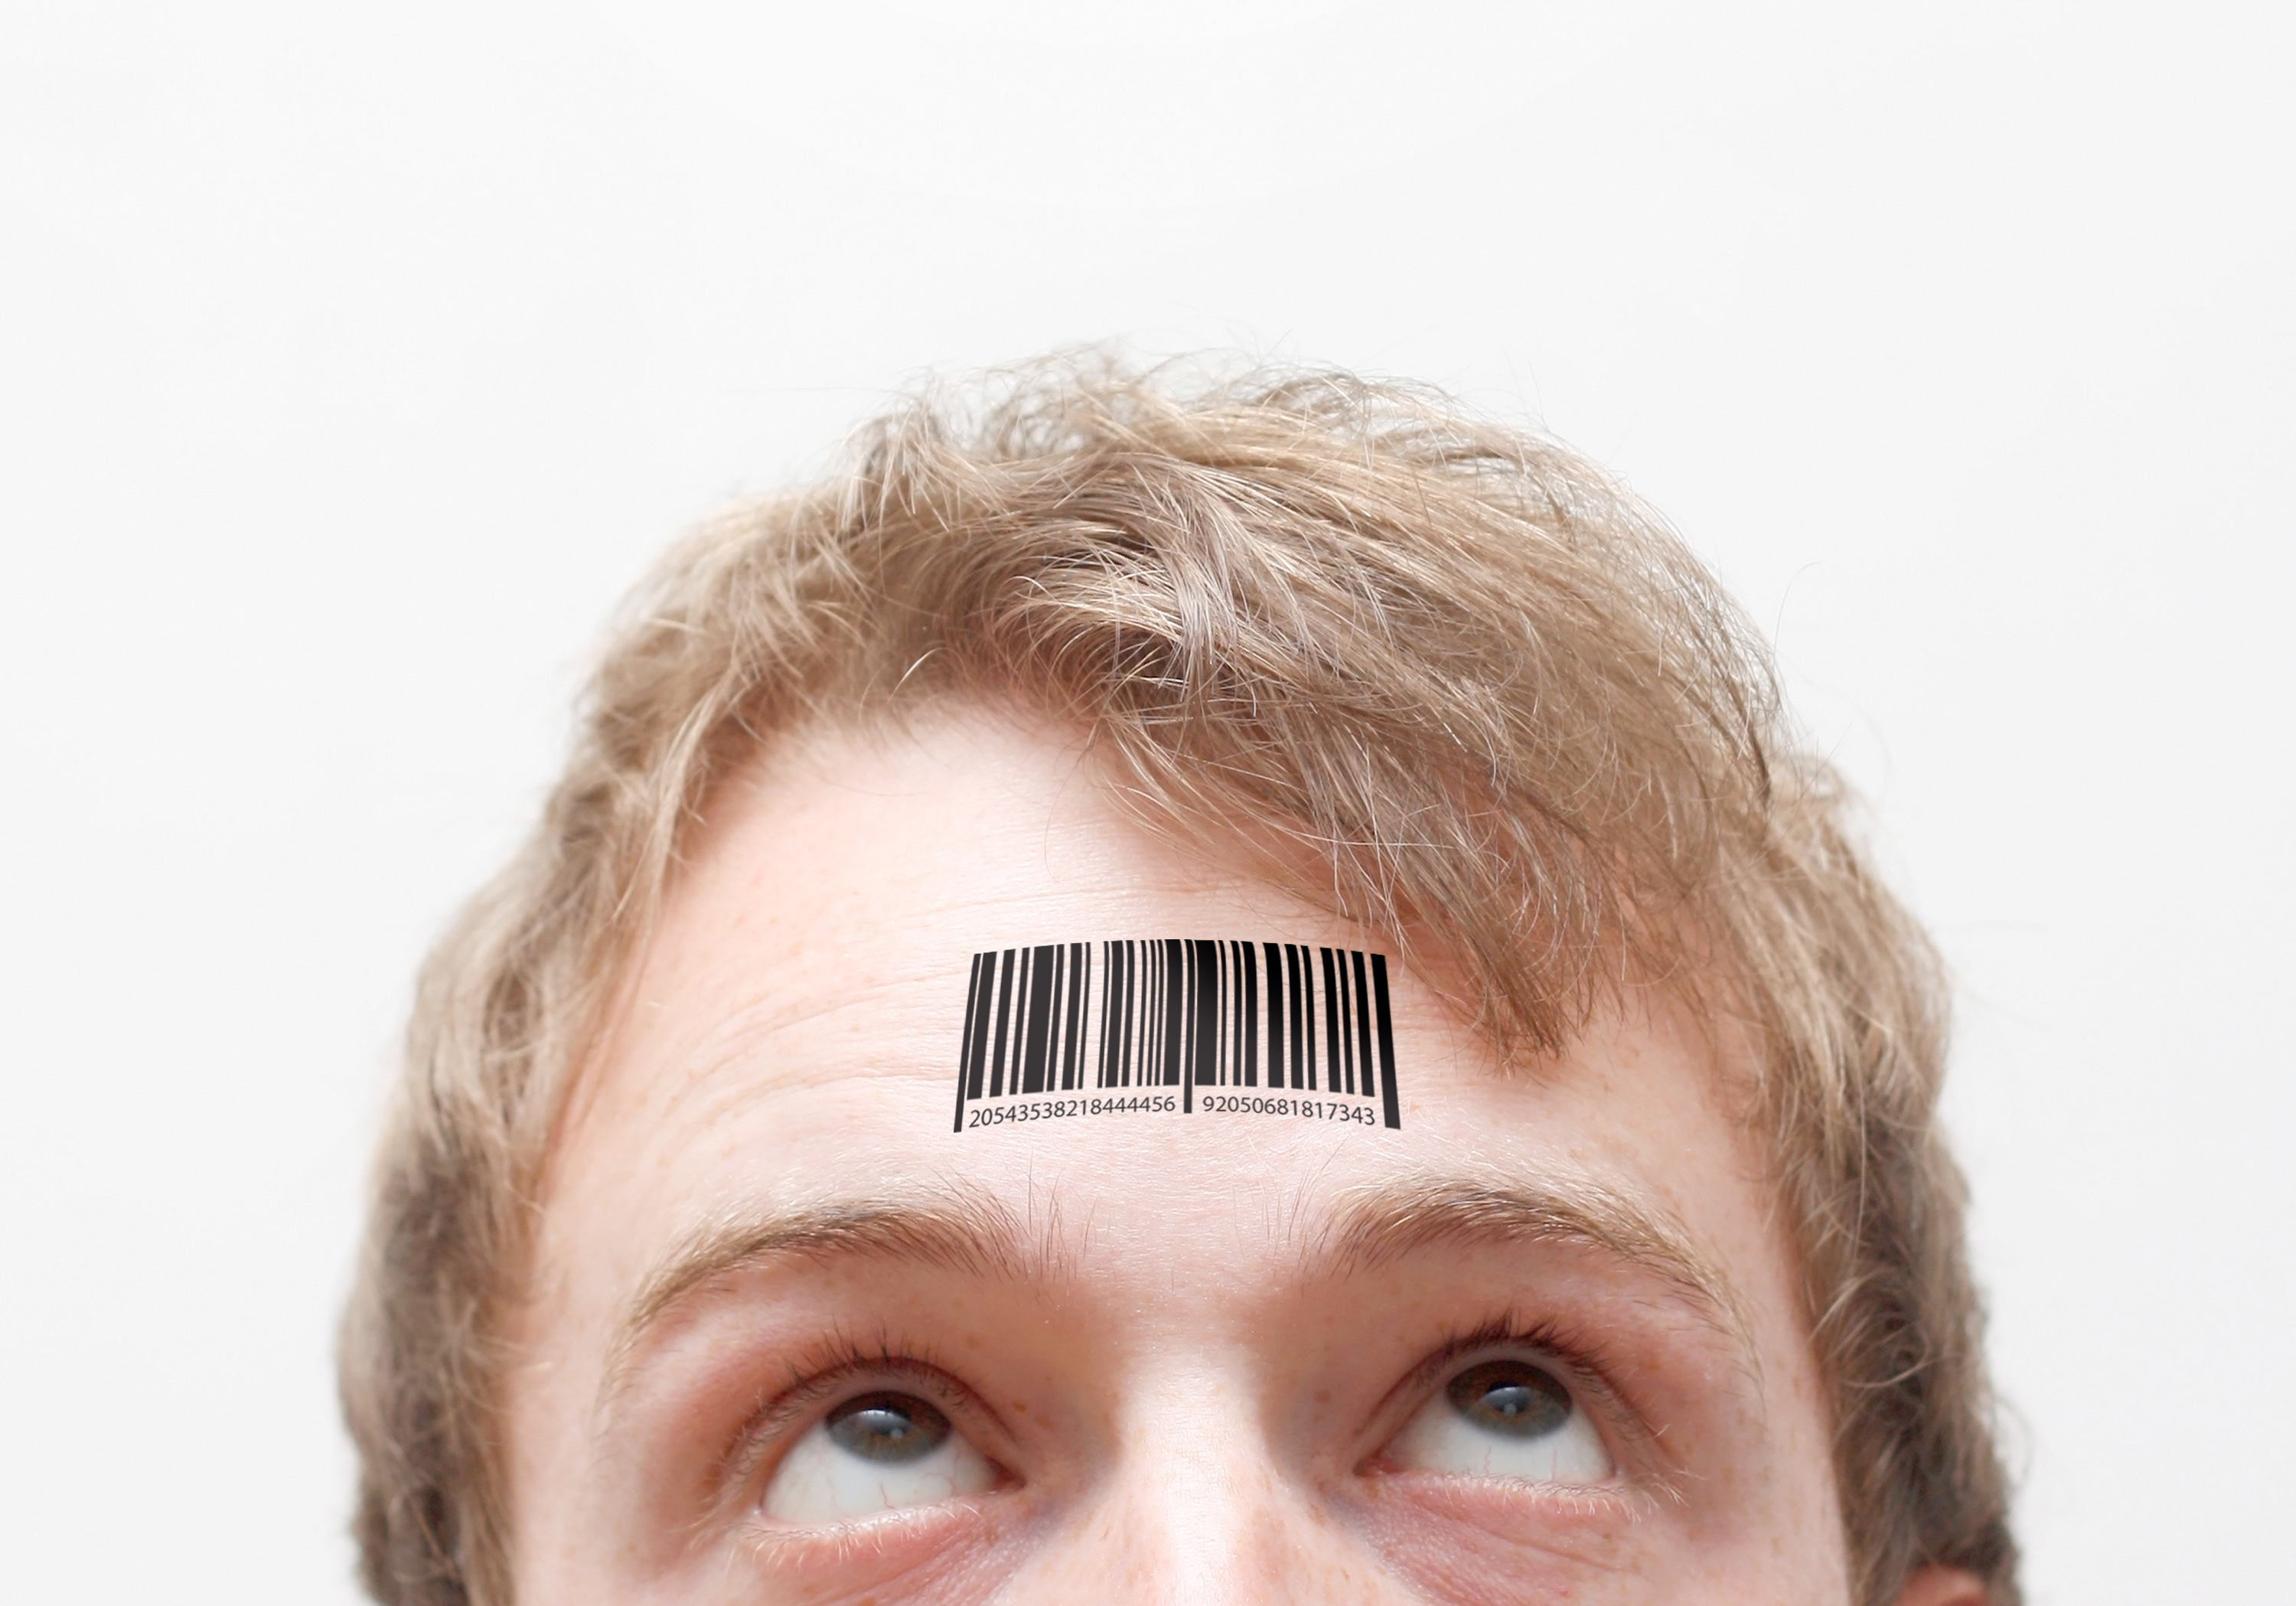 Person with bar code on forehead